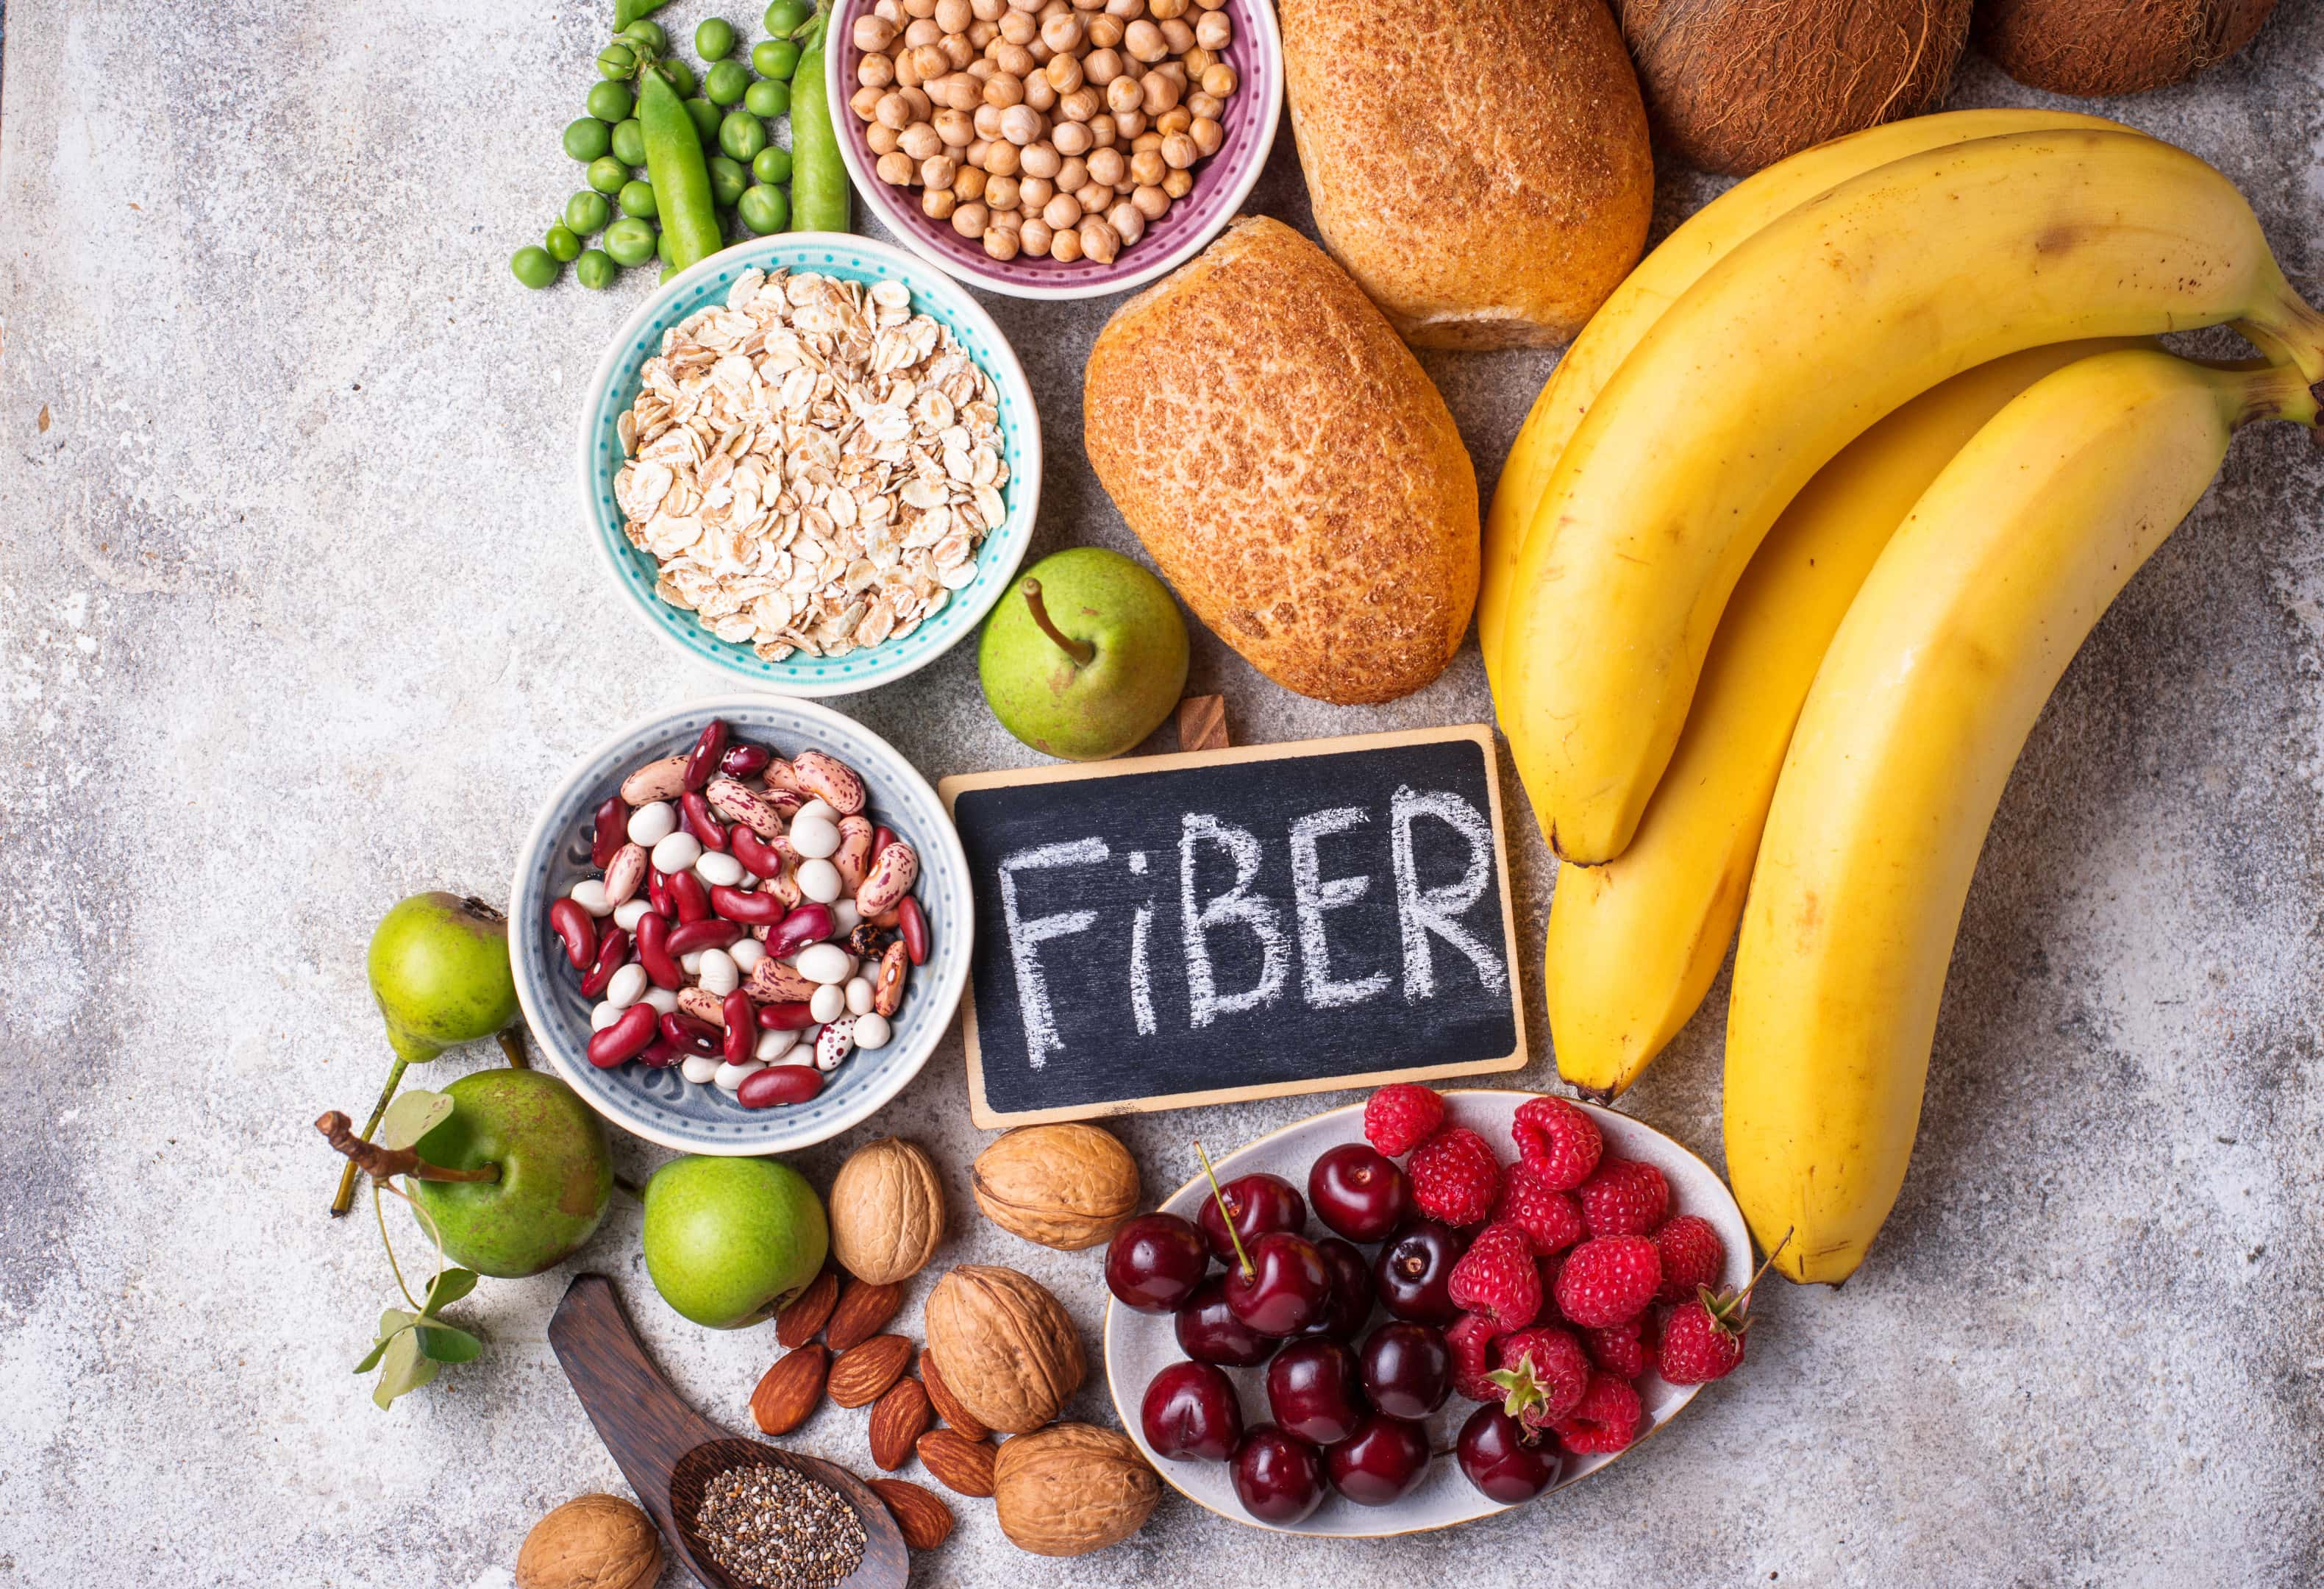 Fiber rich food products